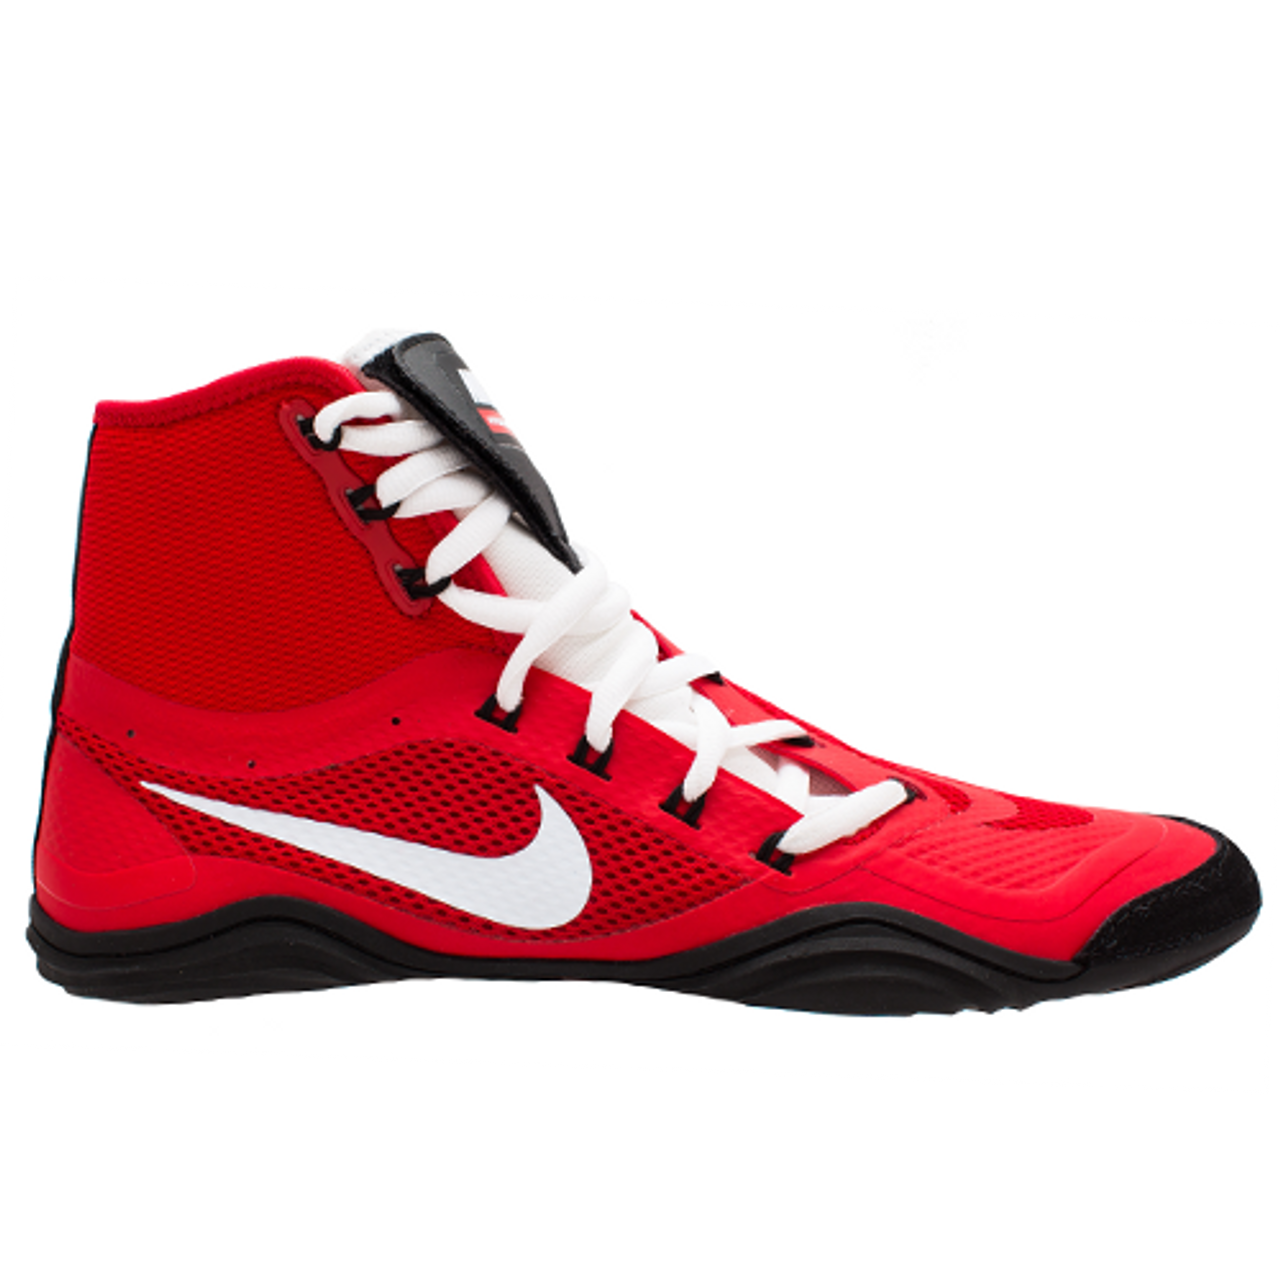 Nike Hypersweep Limited Edition - Red